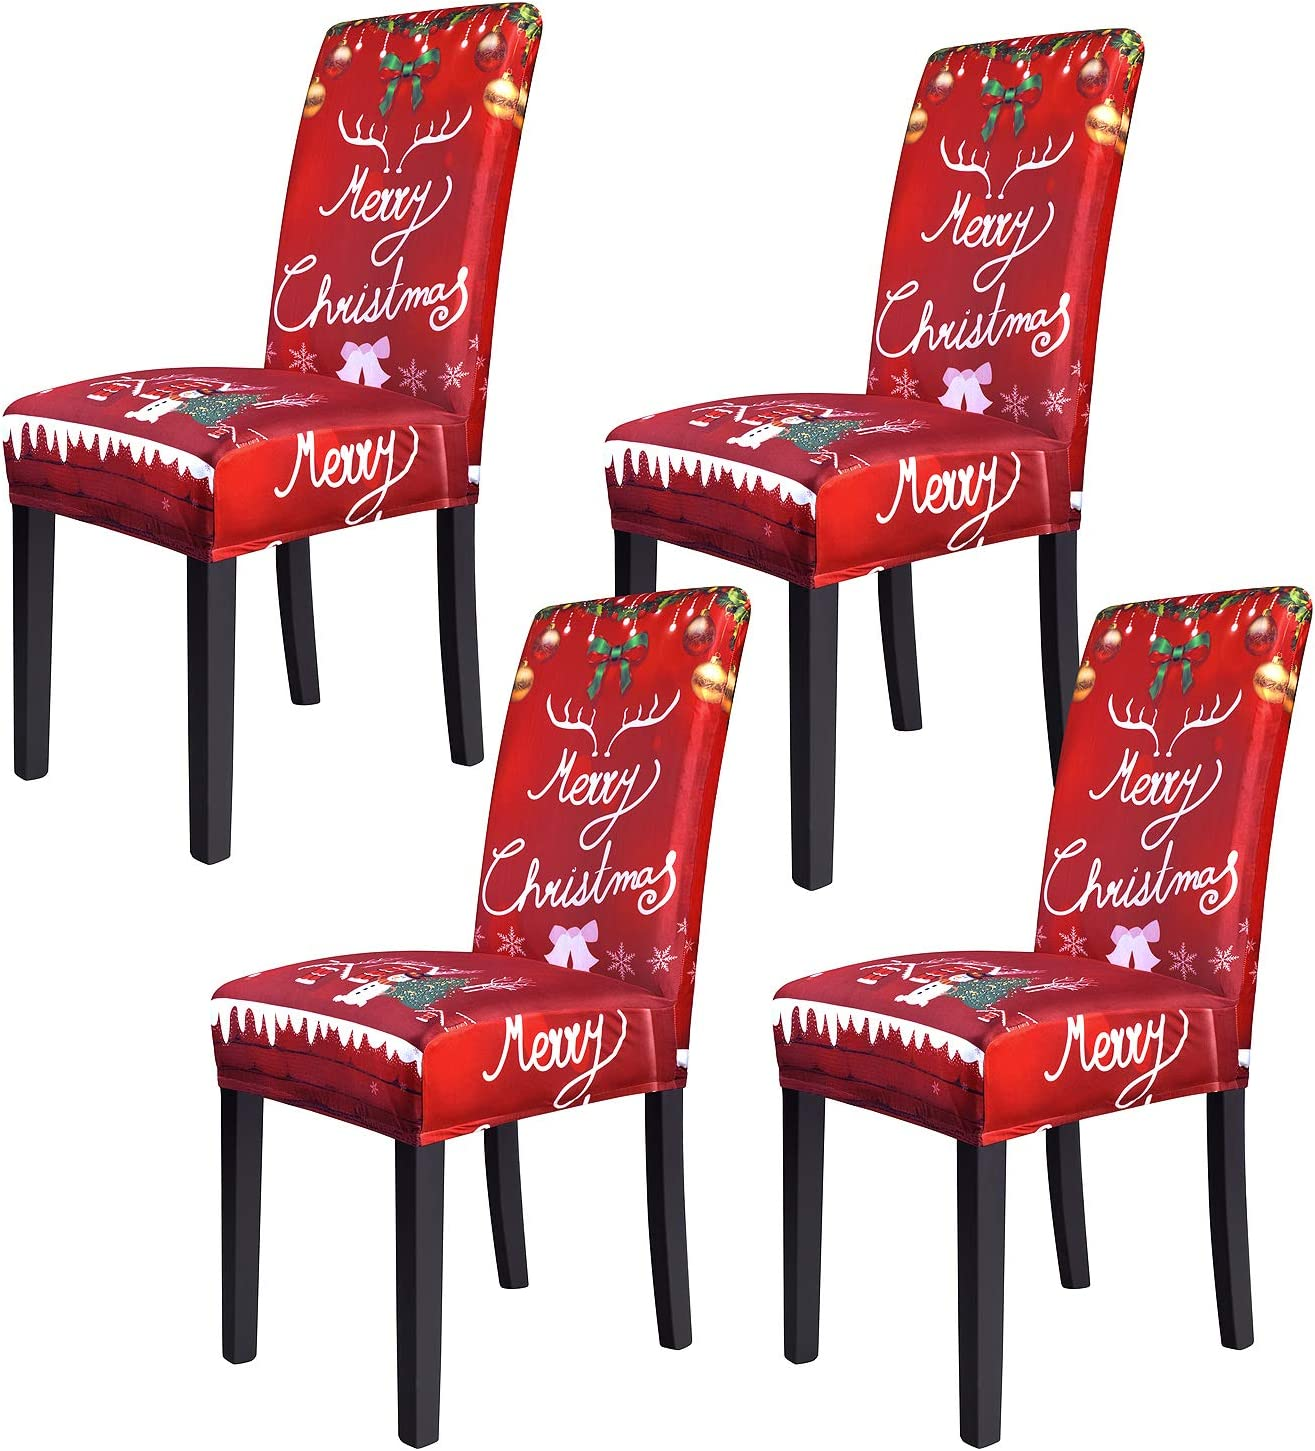 Dining Chair Cover Stretch Washable Chair Seat Protector for Dining Room, High Back Slipcovers Persons Chair Cover for Christmas Kitchen Decoration Restaurant Holiday Festival Party Decor Set of 4: Kitchen & Dining